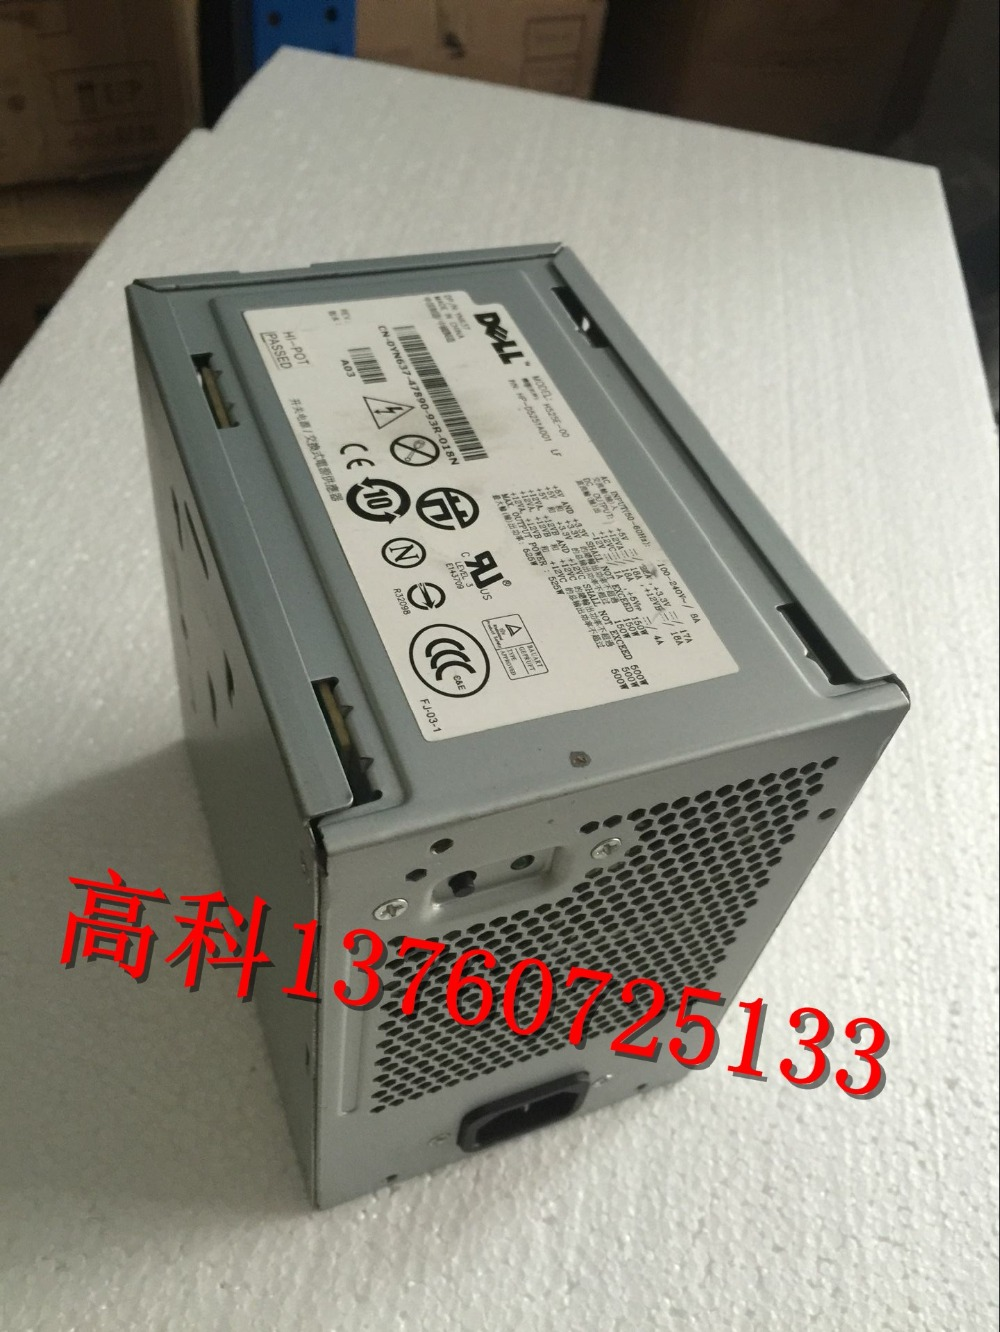 Free shipping New color DELL T3400 T410 workstation power supply N525E-00 YN637 YY922 M331JFree shipping New color DELL T3400 T410 workstation power supply N525E-00 YN637 YY922 M331J